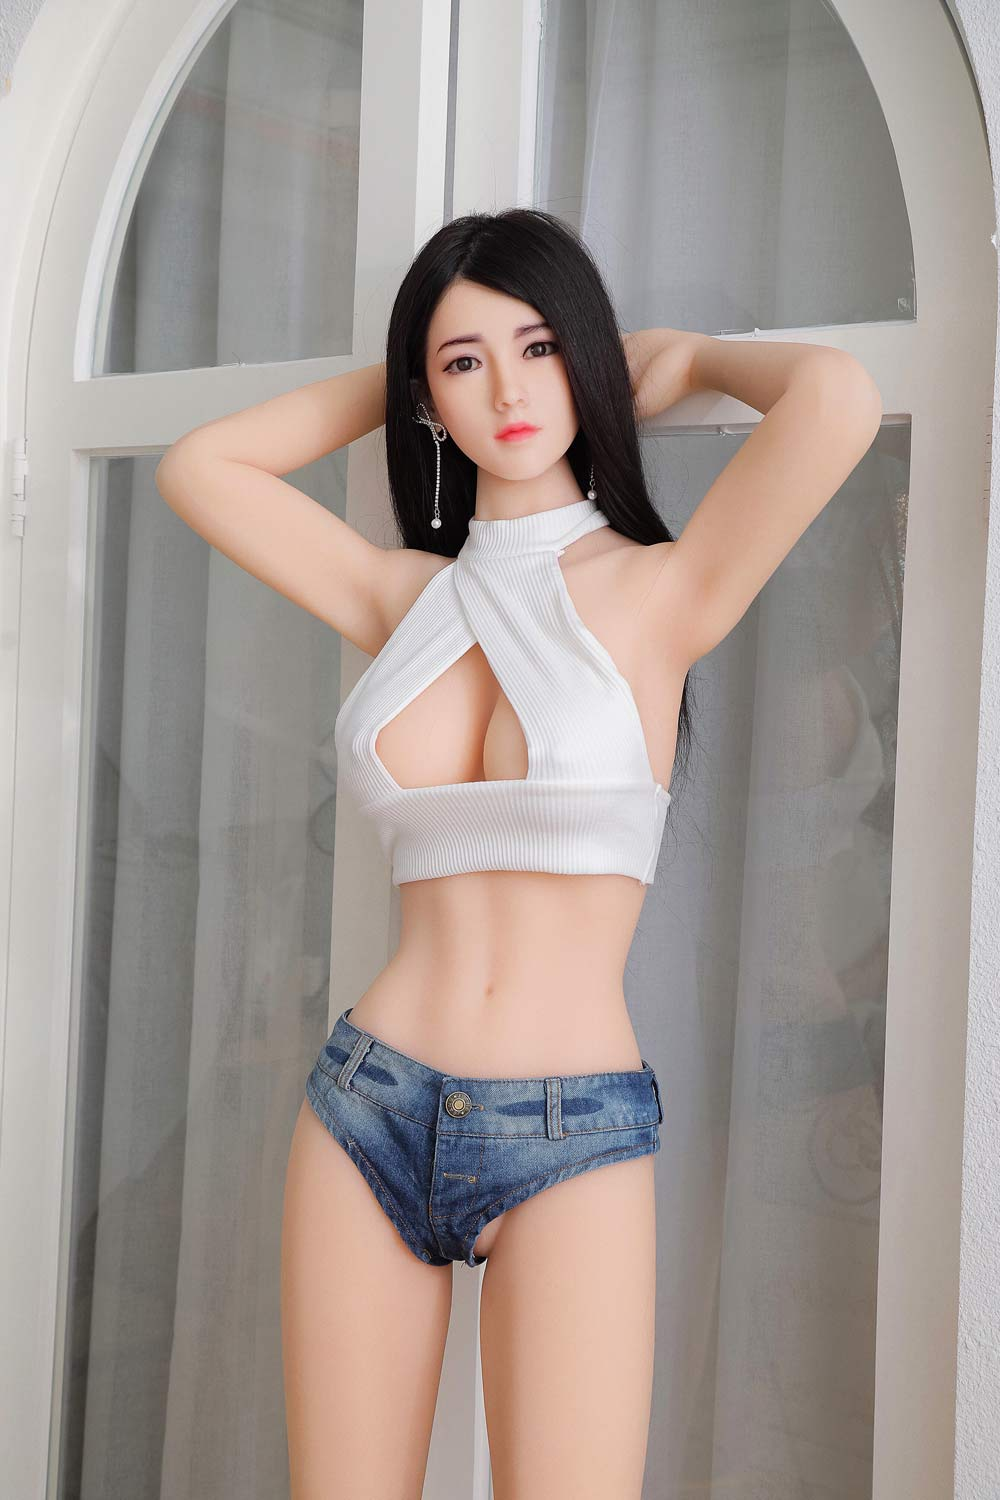 Silicone sex doll with hands holding head